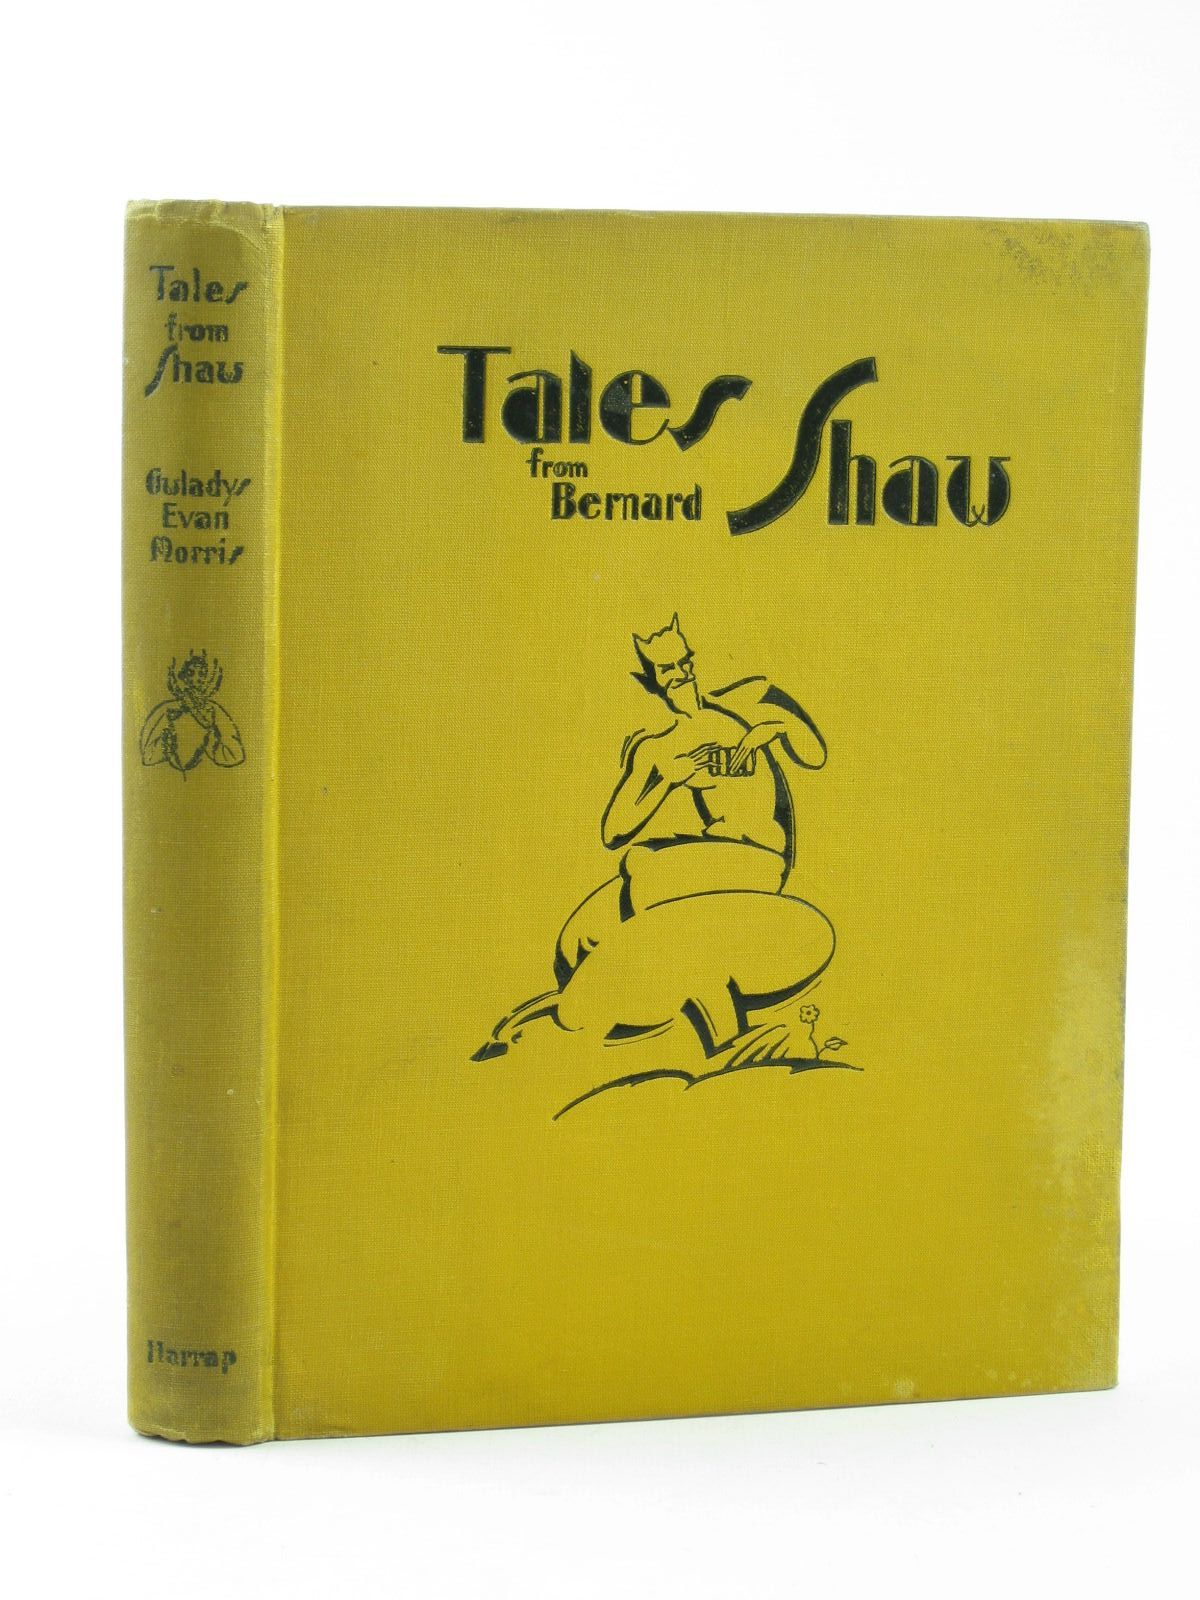 Photo of TALES FROM BERNARD SHAW TOLD IN THE JUNGLE written by Morris, Gwladys Evan illustrated by Trery, Phyllis A. published by George G. Harrap & Co. Ltd. (STOCK CODE: 1311767)  for sale by Stella & Rose's Books